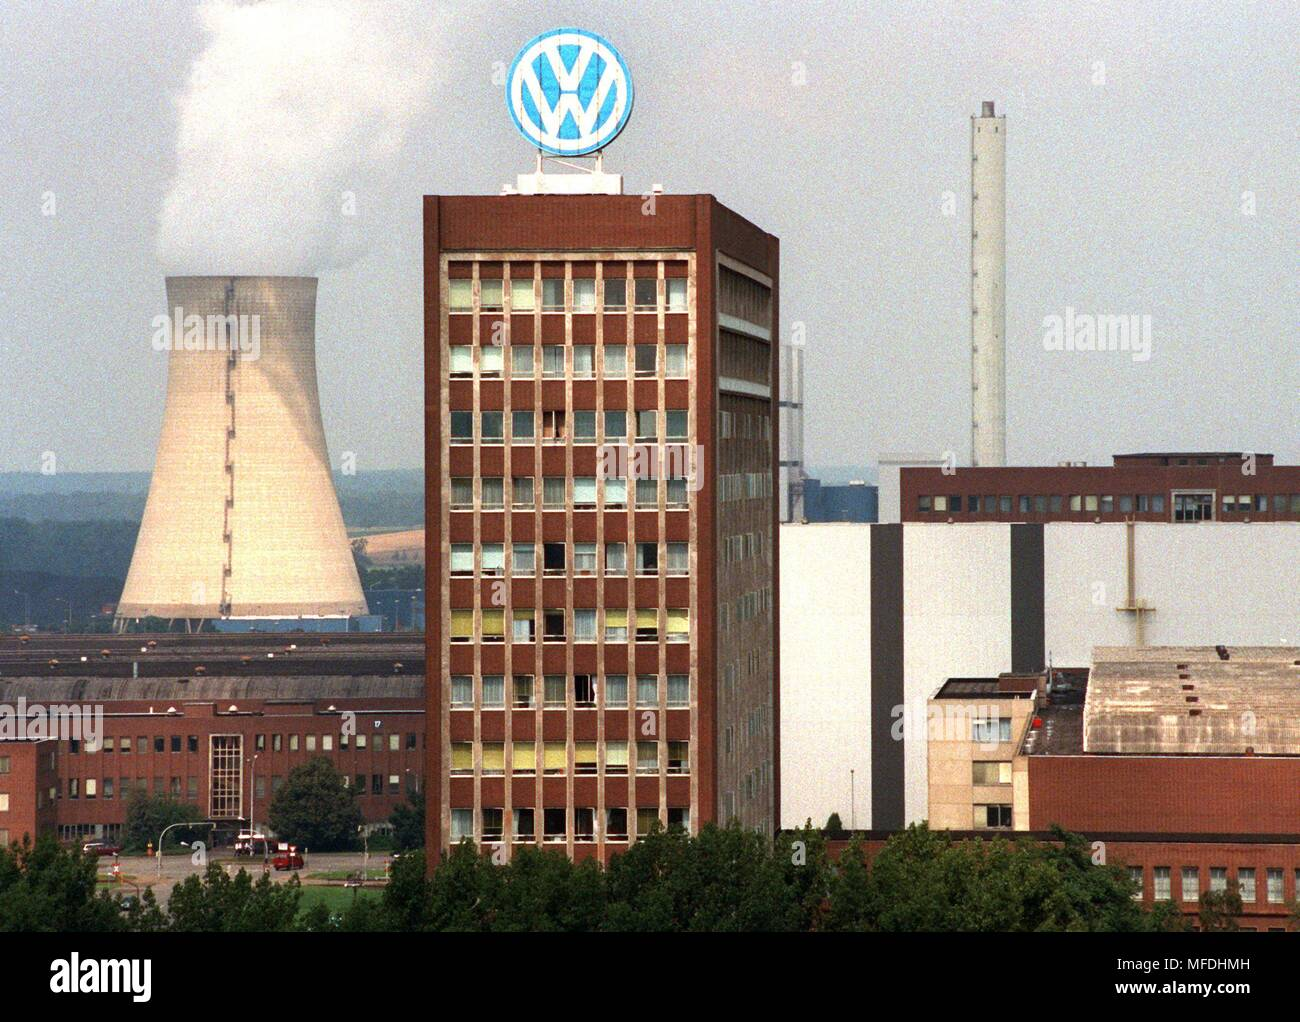 The Wolfsburg Volkswagen Group Photo From 4 8 1993 Will Take Over